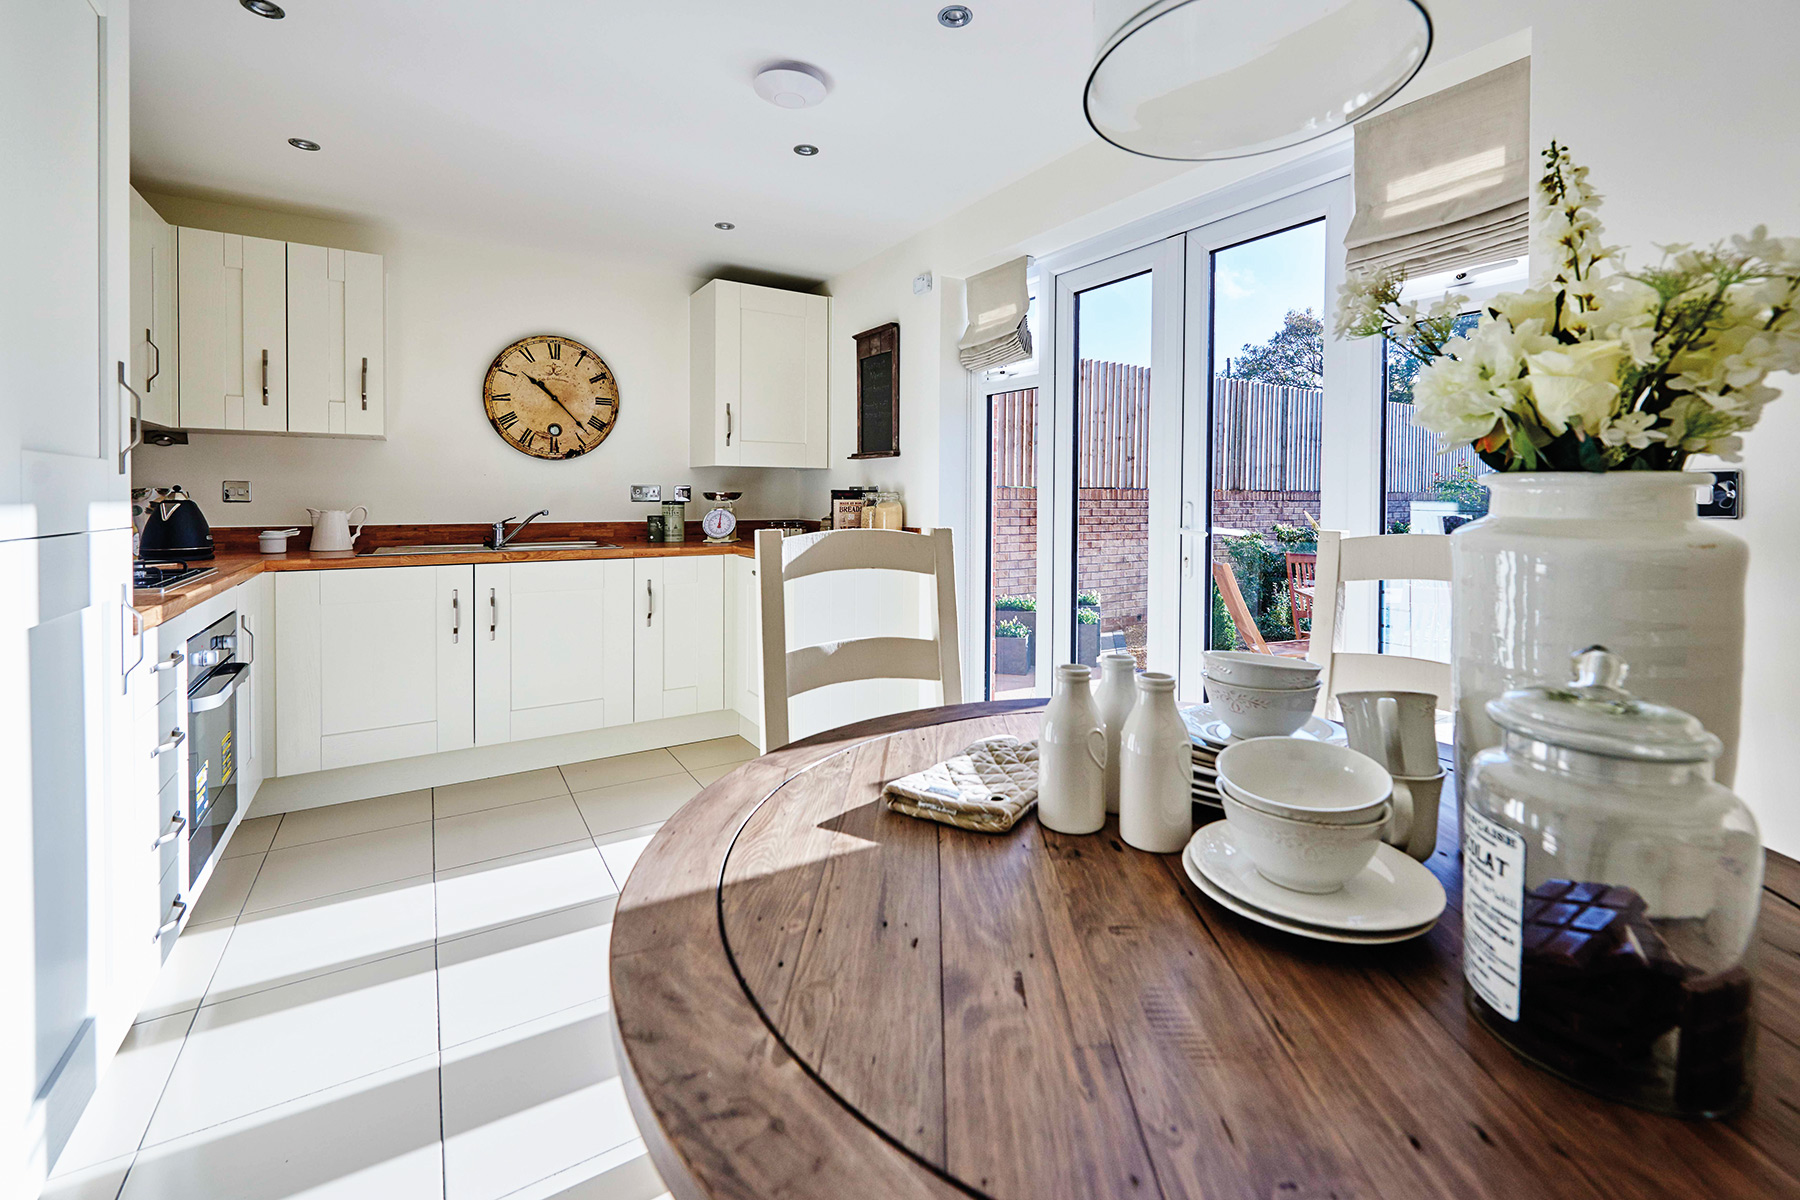 TW Exeter - Mountbatten Mews - Gosford example kitchen 2